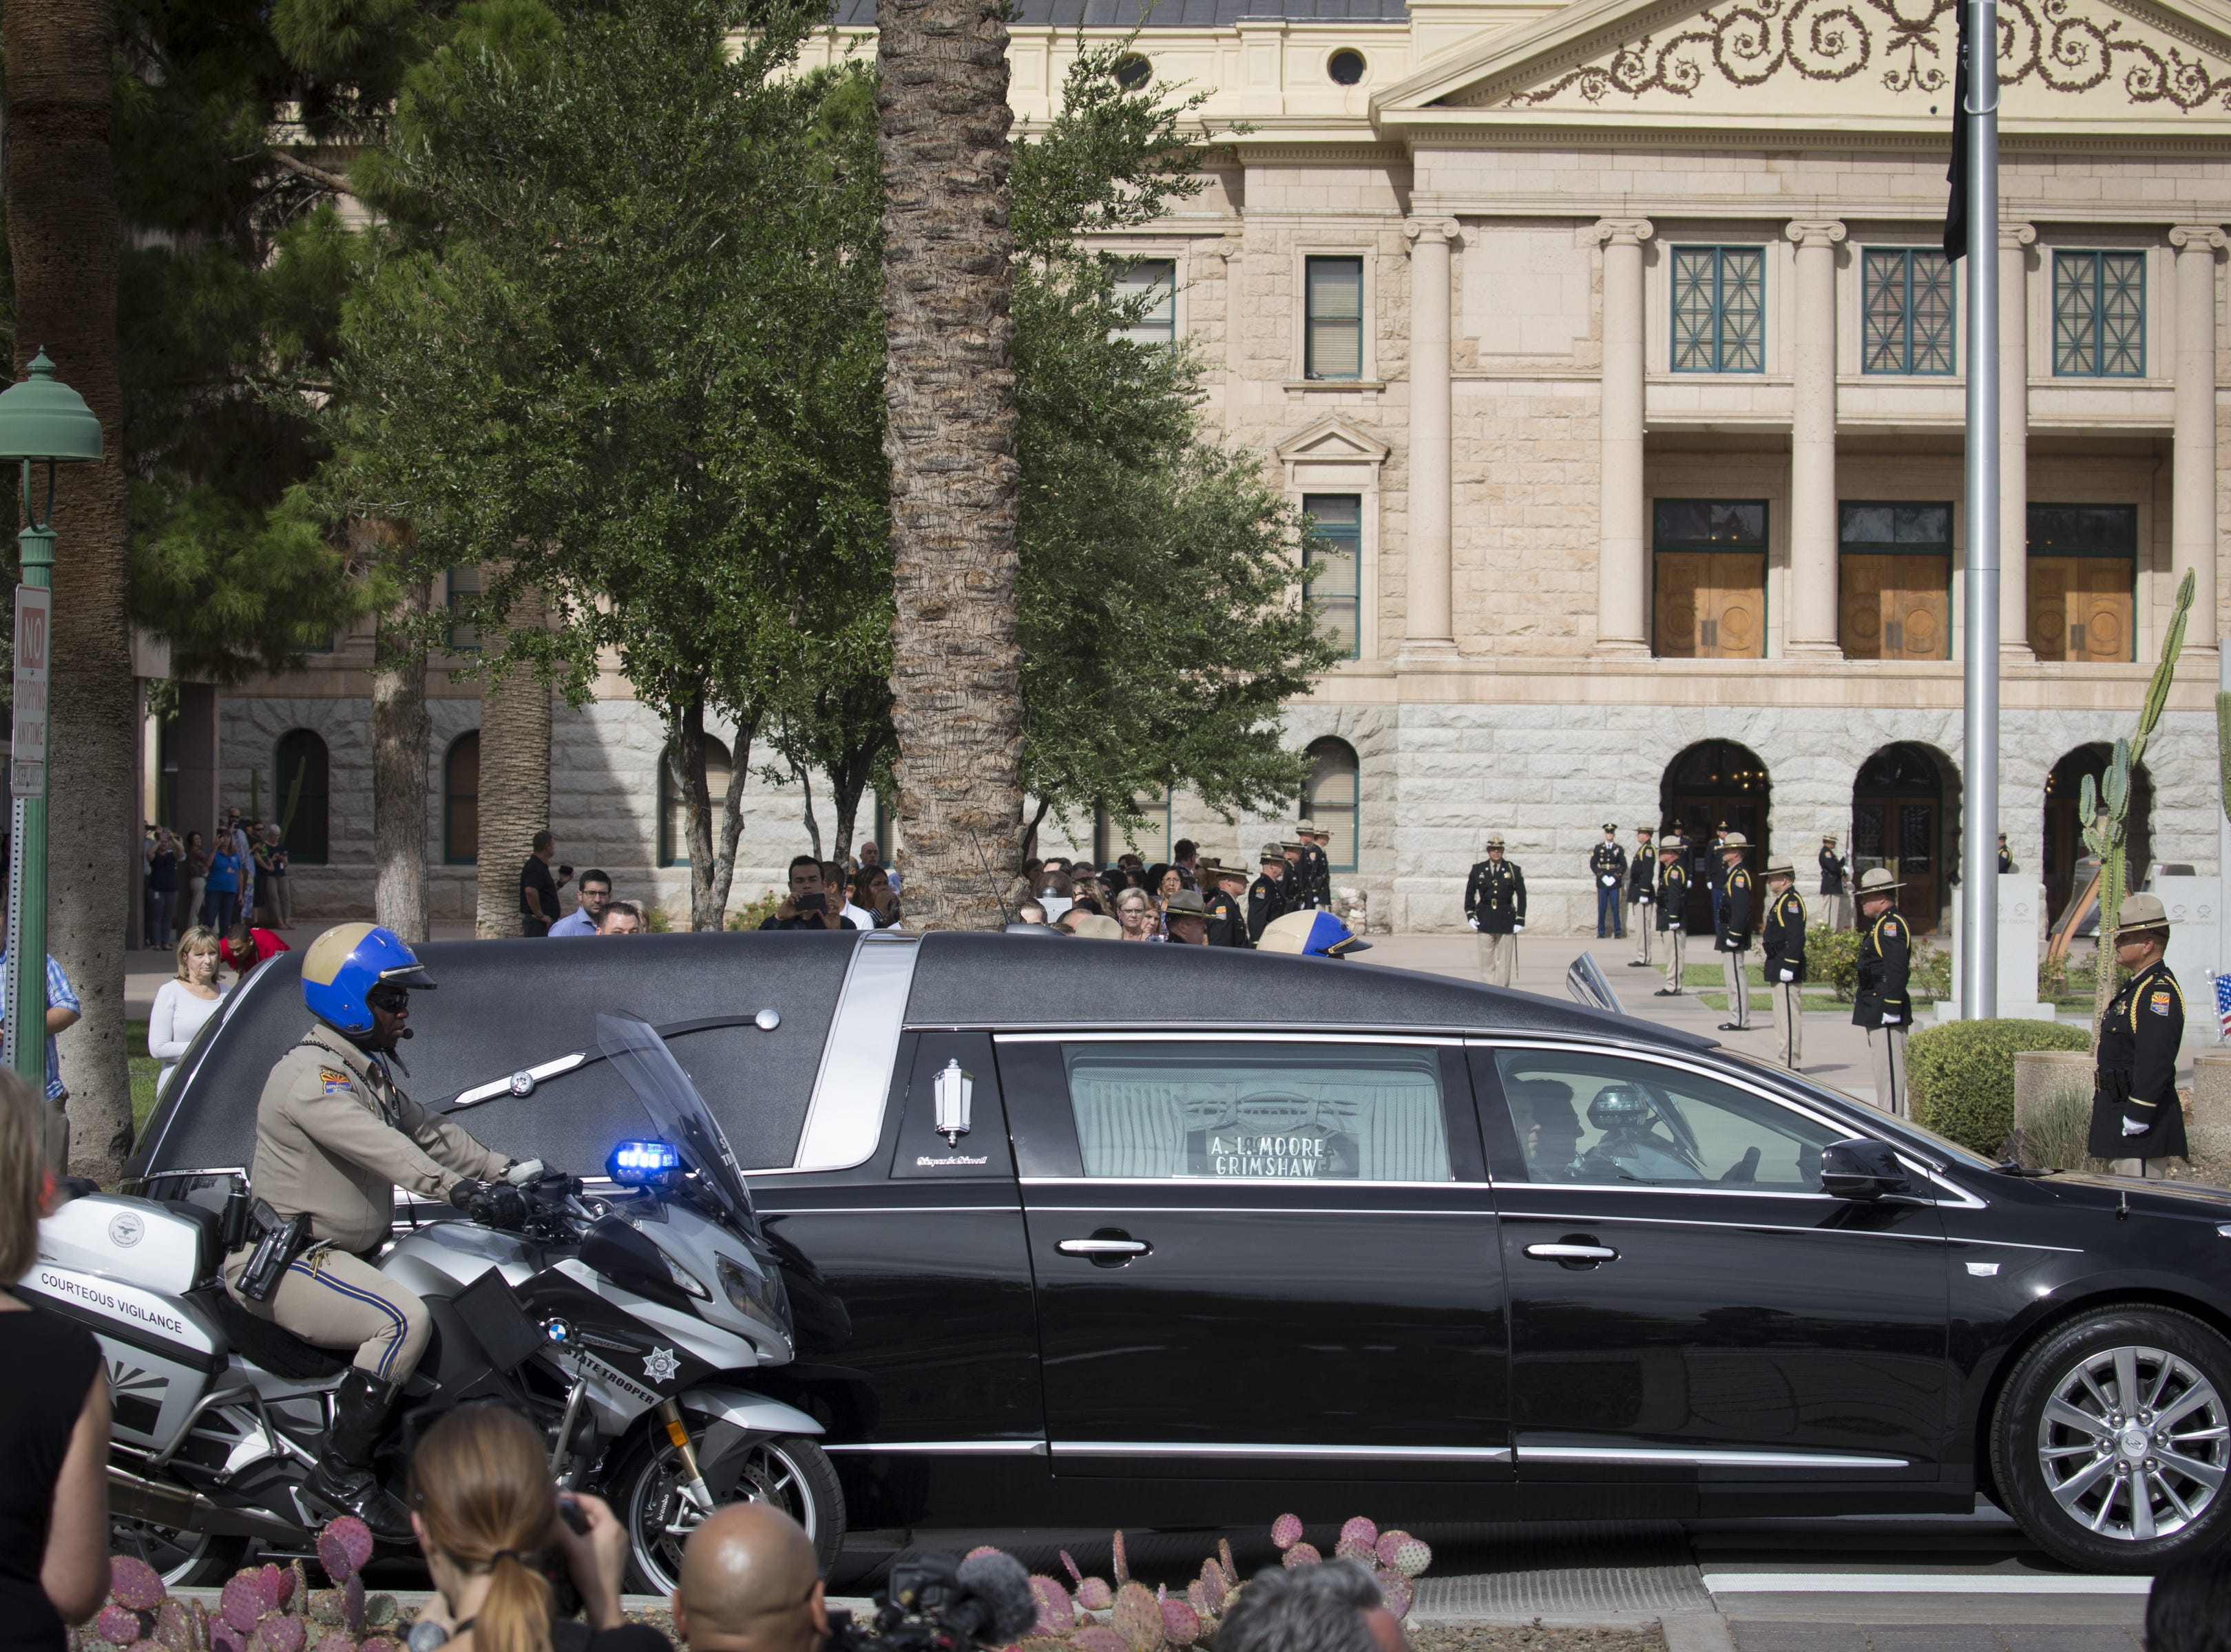 The John McCain motorcade arrives at the Arizona State Capitol, Aug. 30, 2018, Phoenix, Arizona.